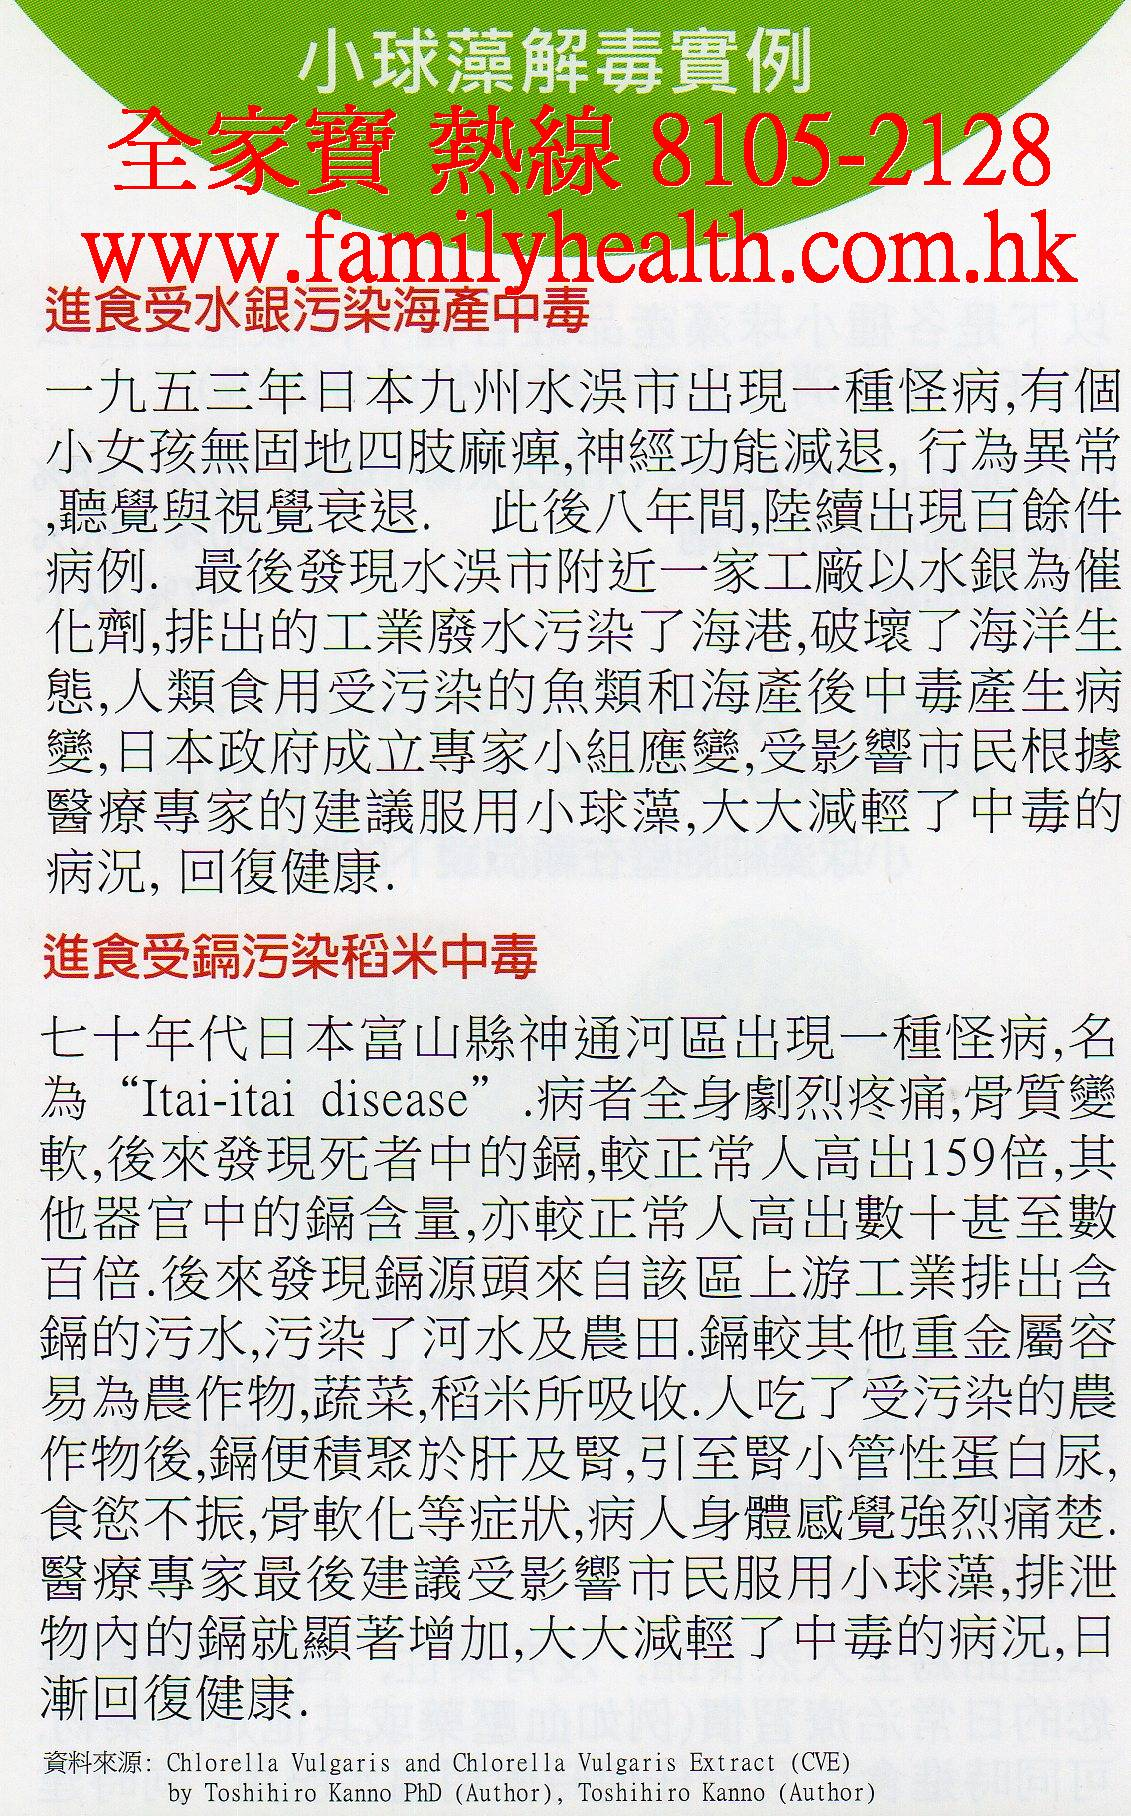 http://www.familyhealth.com.hk/files/full/1022_4.jpg